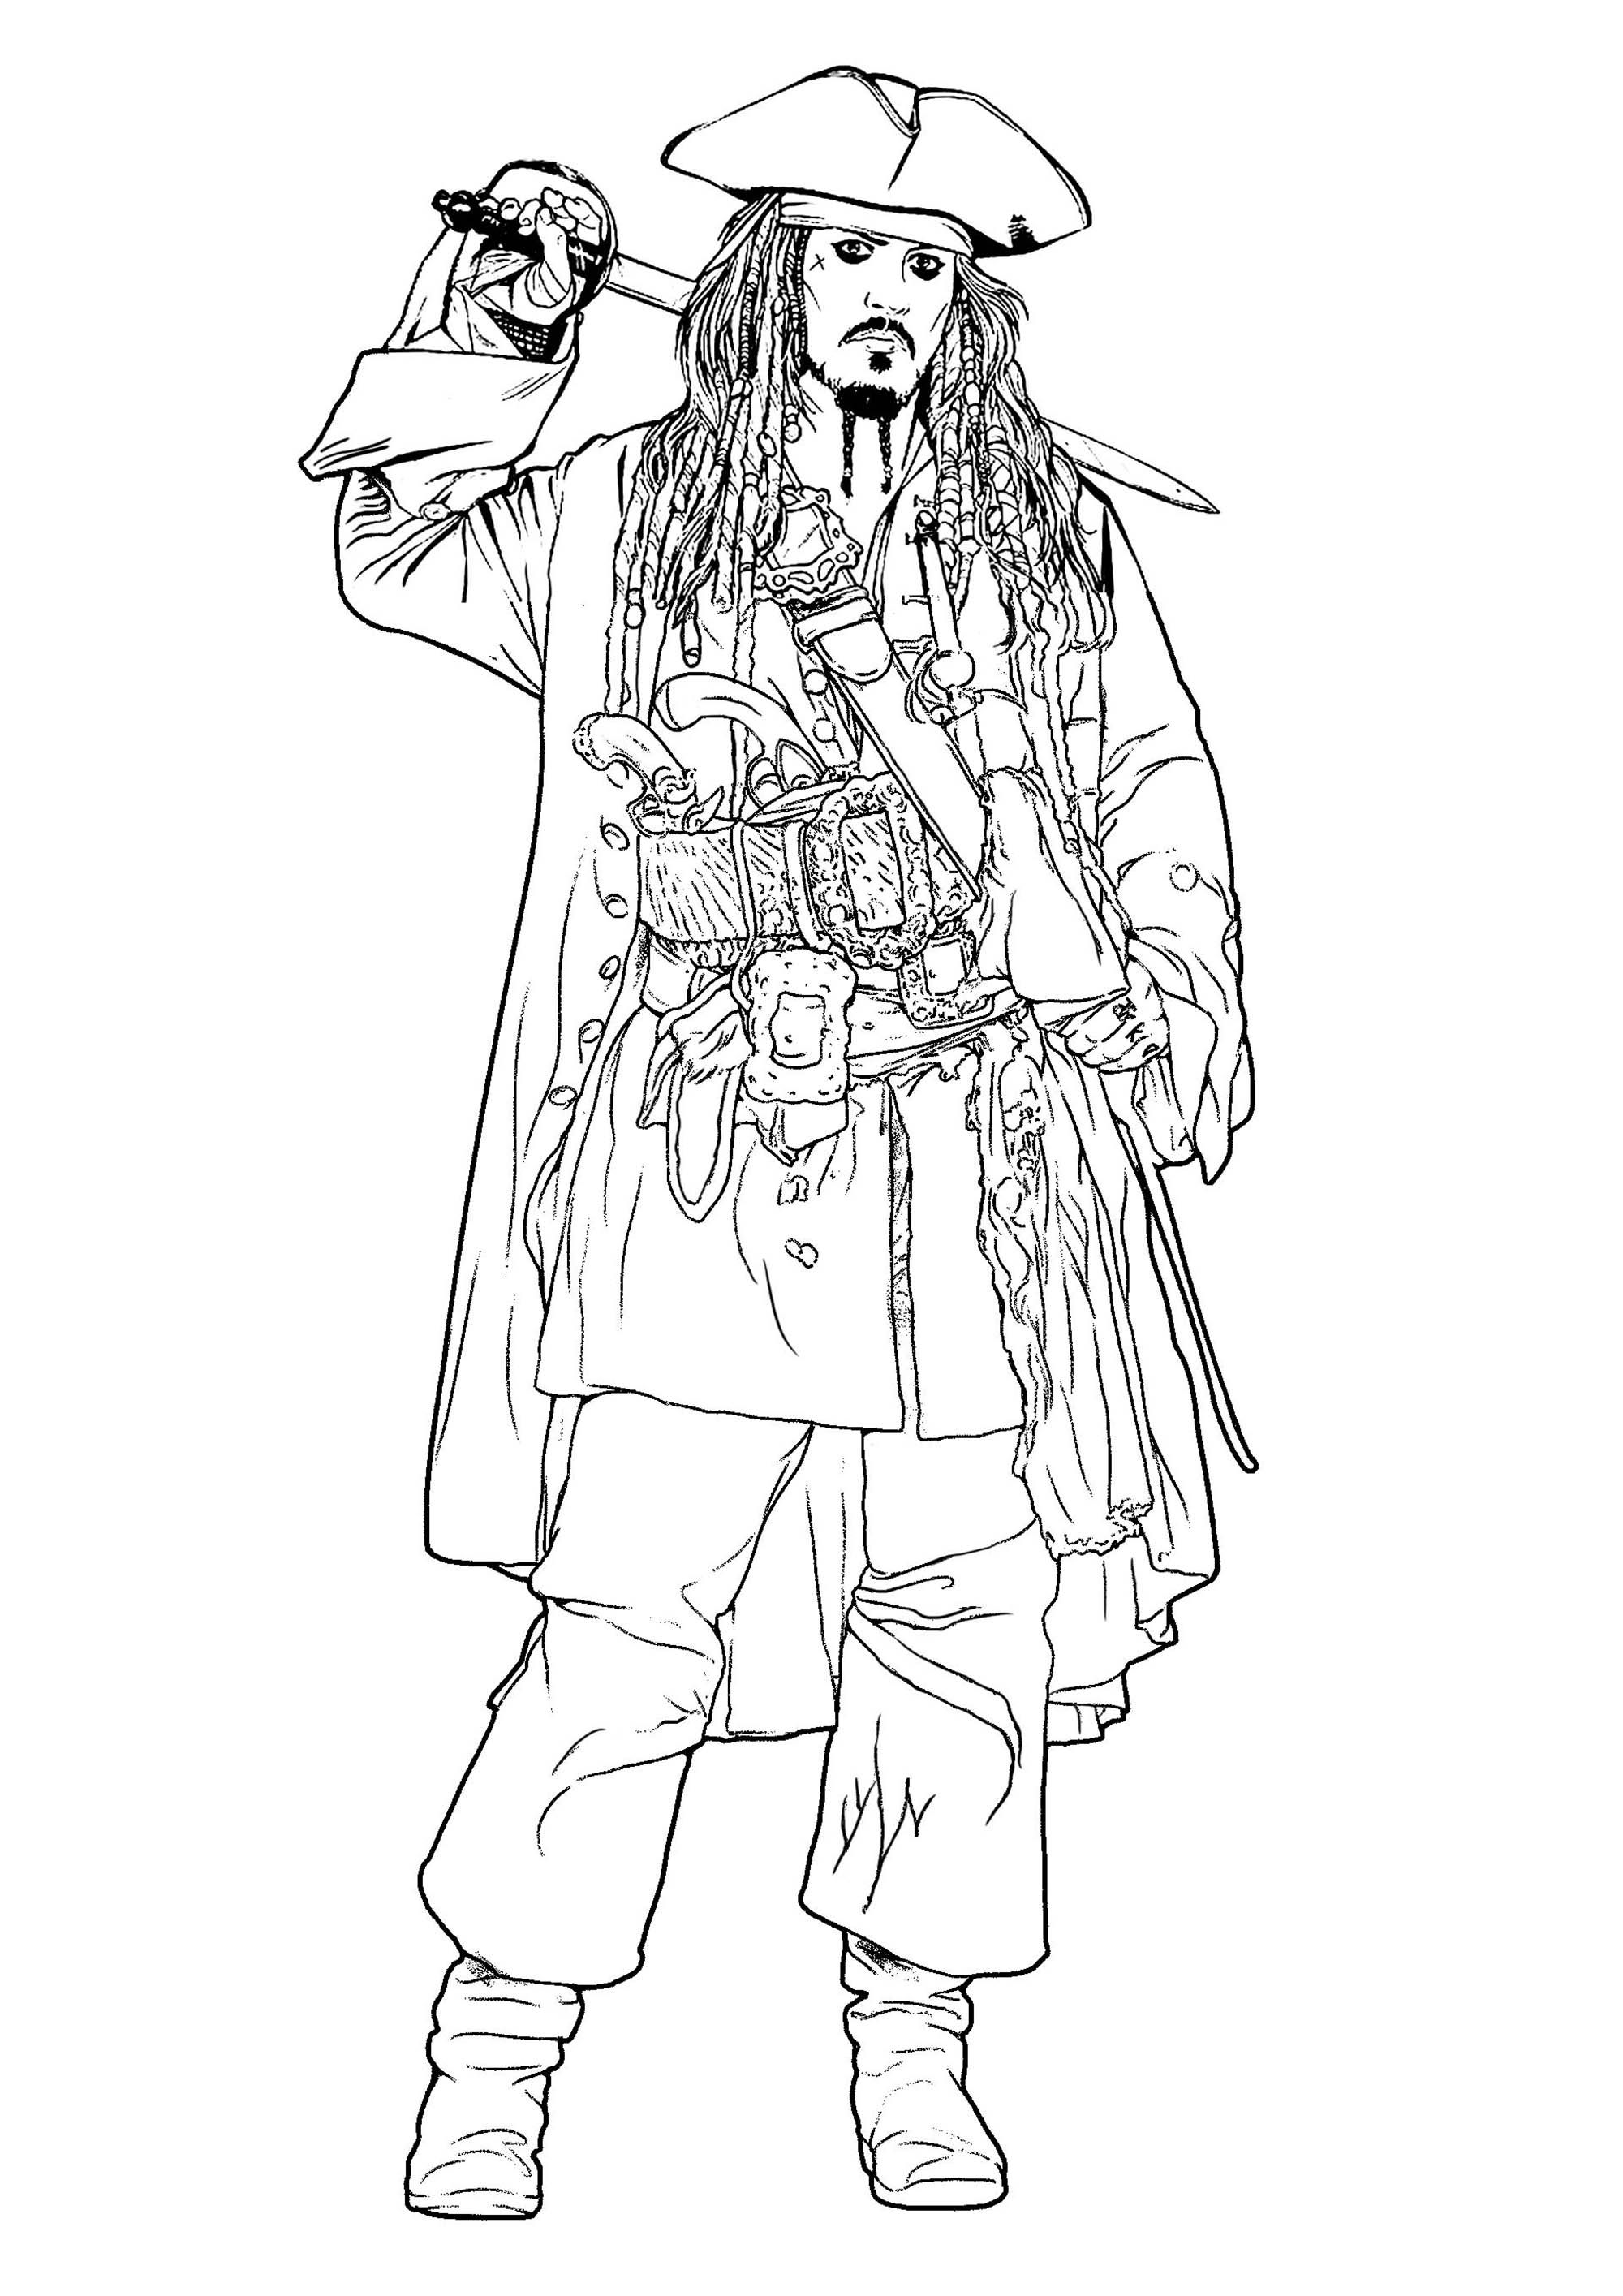 Jack Sparrow Movies Coloring Pages For Adults Just Color With